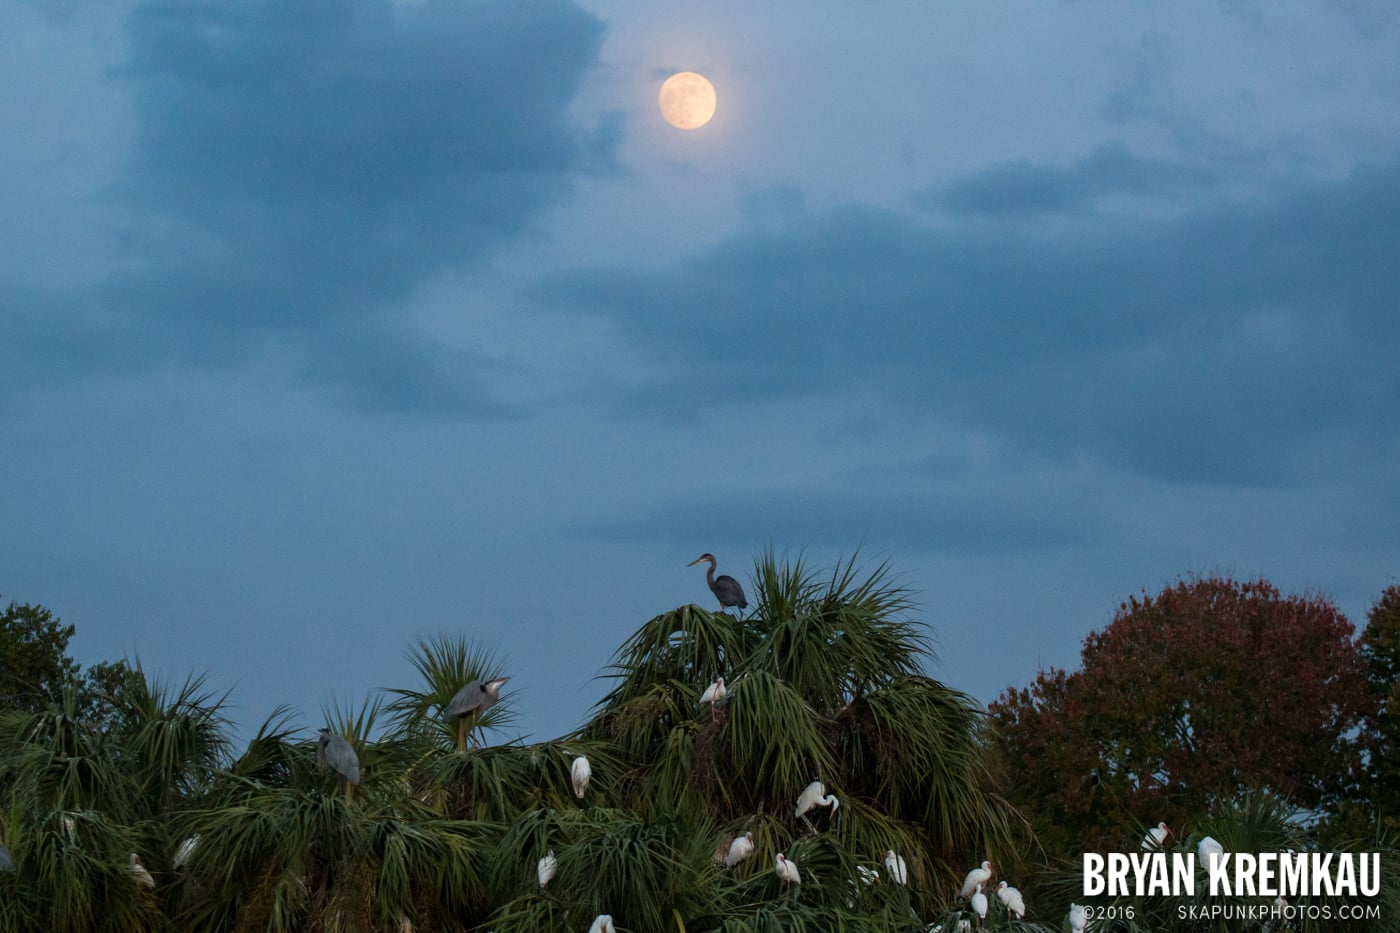 Sunsets, Astrophotography & Birds @ Venice, Florida - 10.25.14 - 11.5.14 (9)